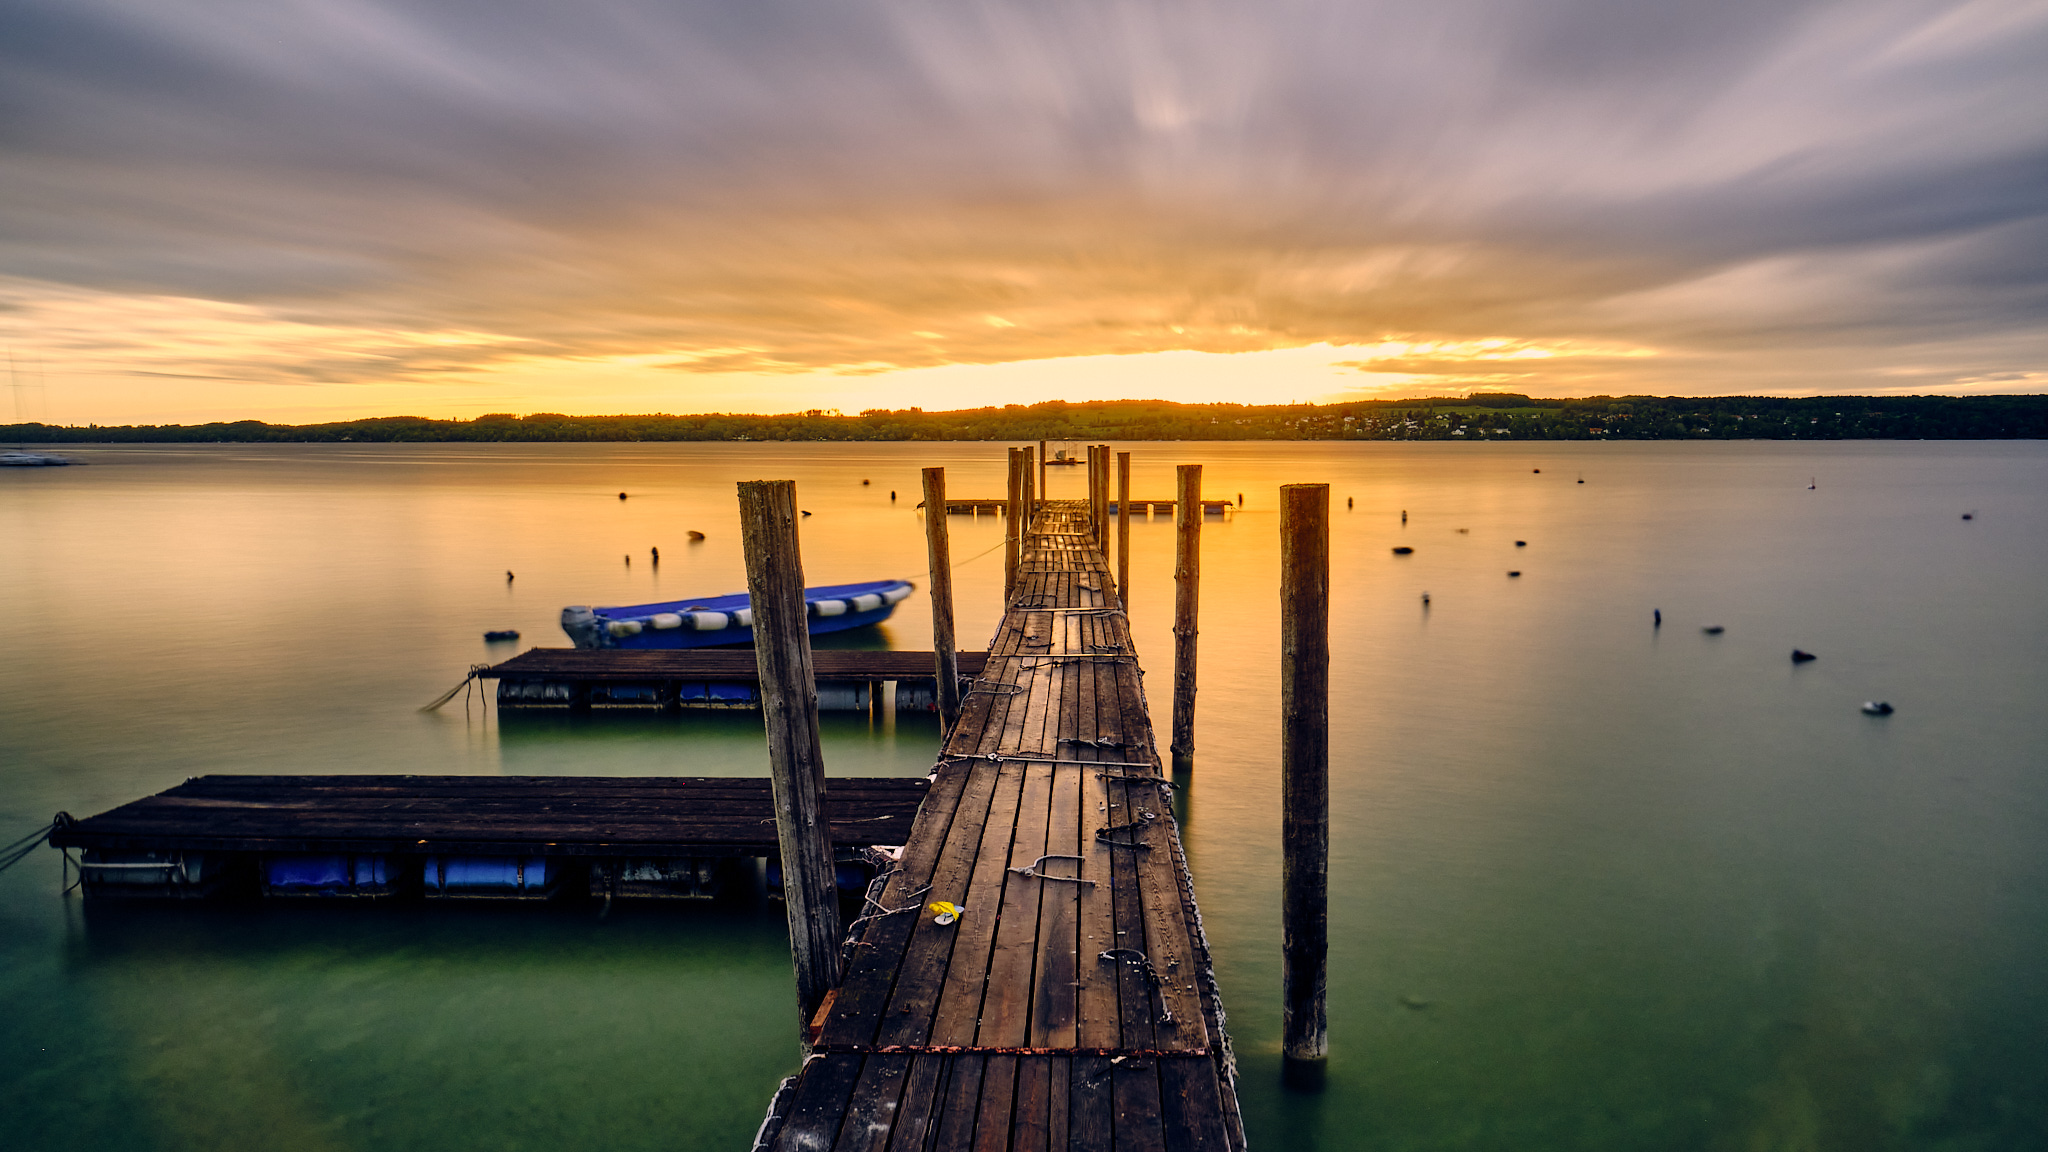 Sonnenaufgang am Ammersee